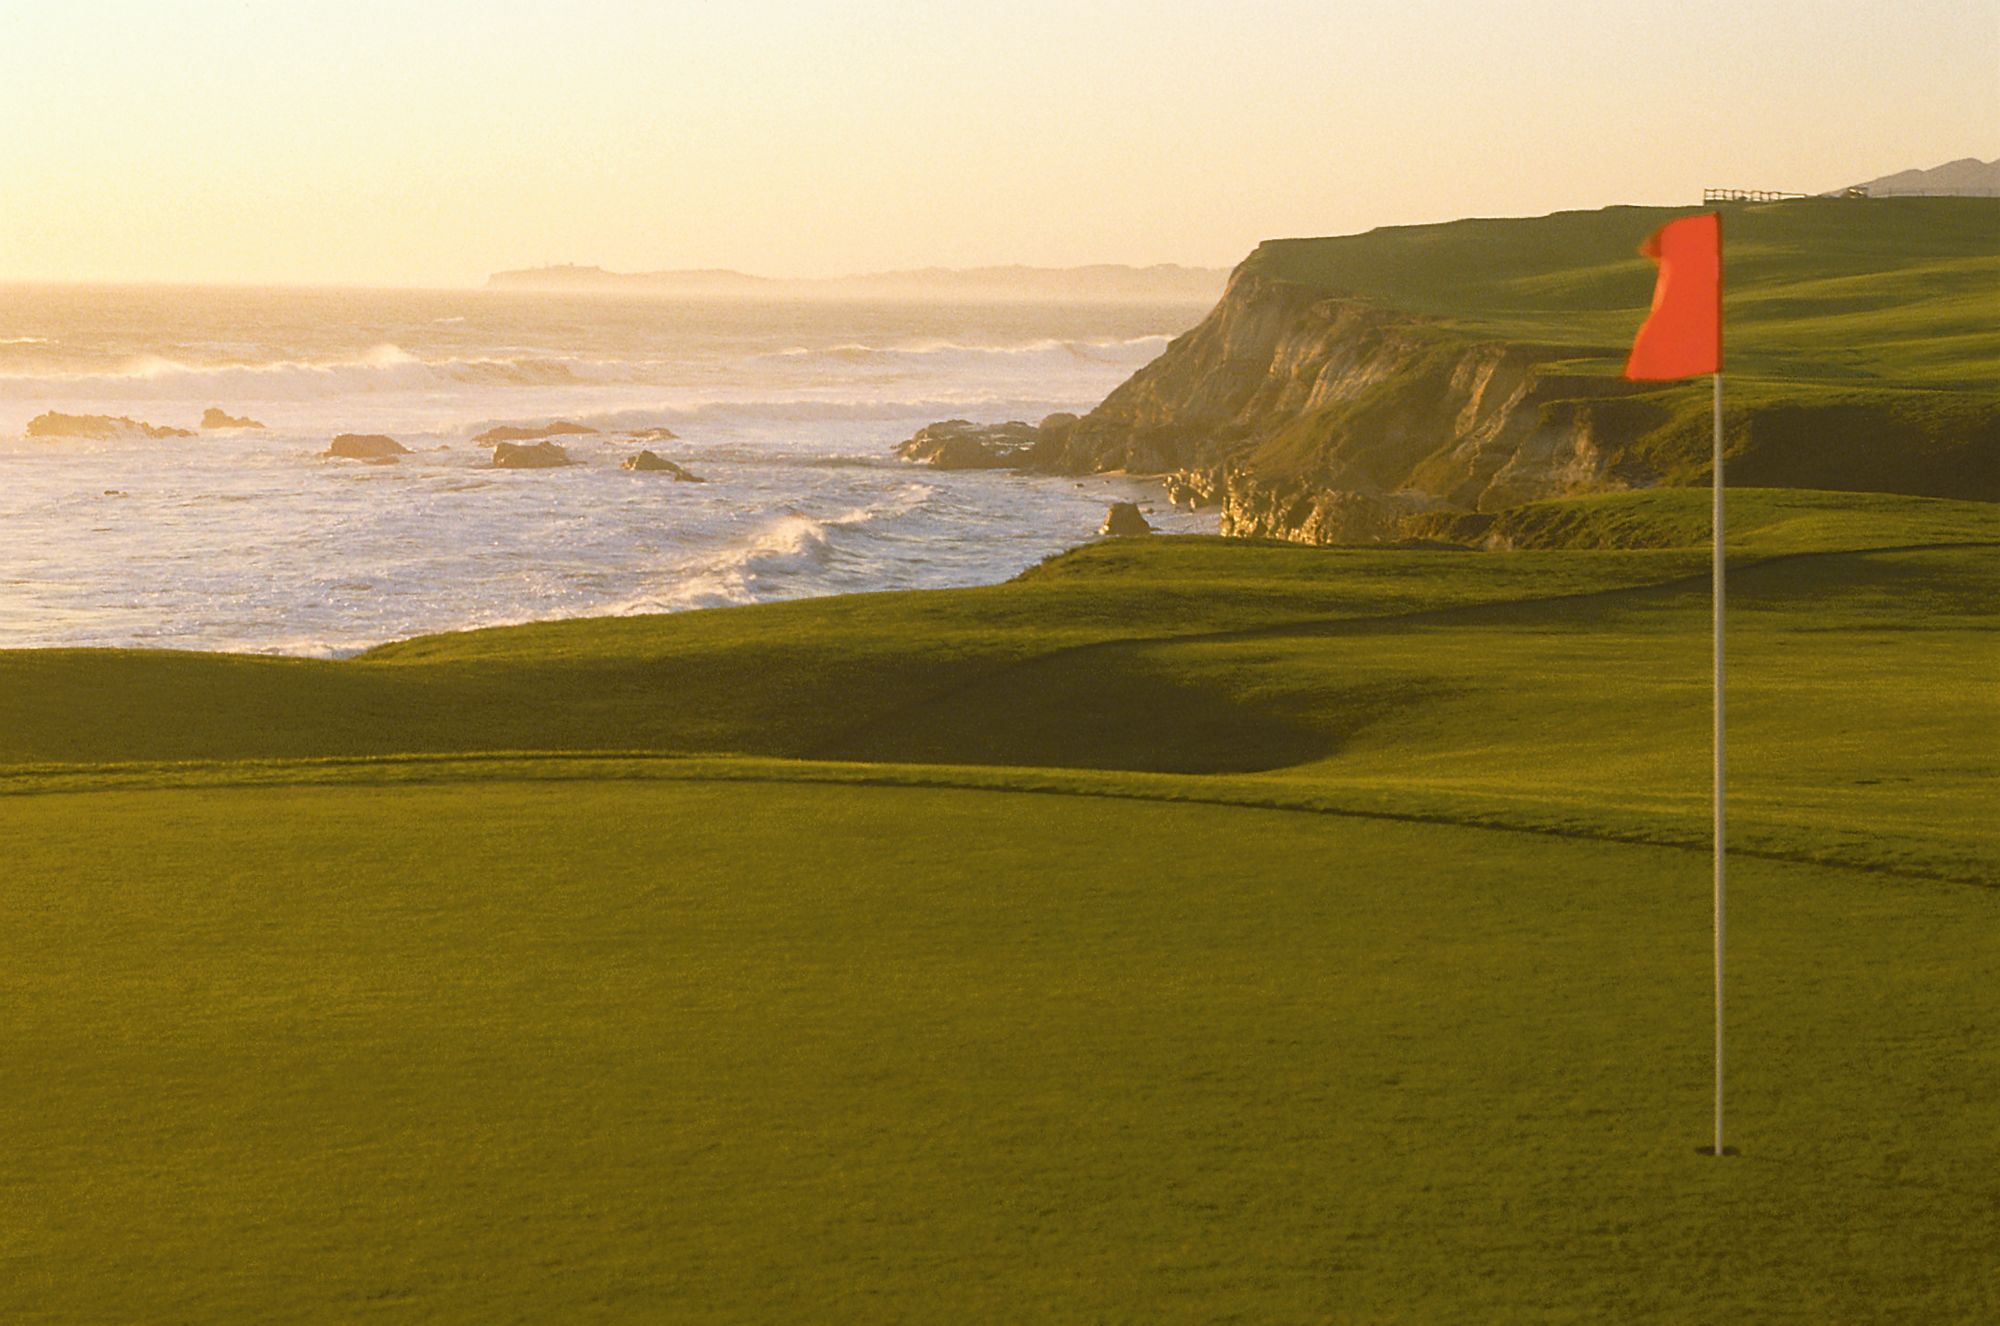 A flag indicates the 18th hole on a golf course, which sits next to the ocean 26. HalfMoonBay_00169